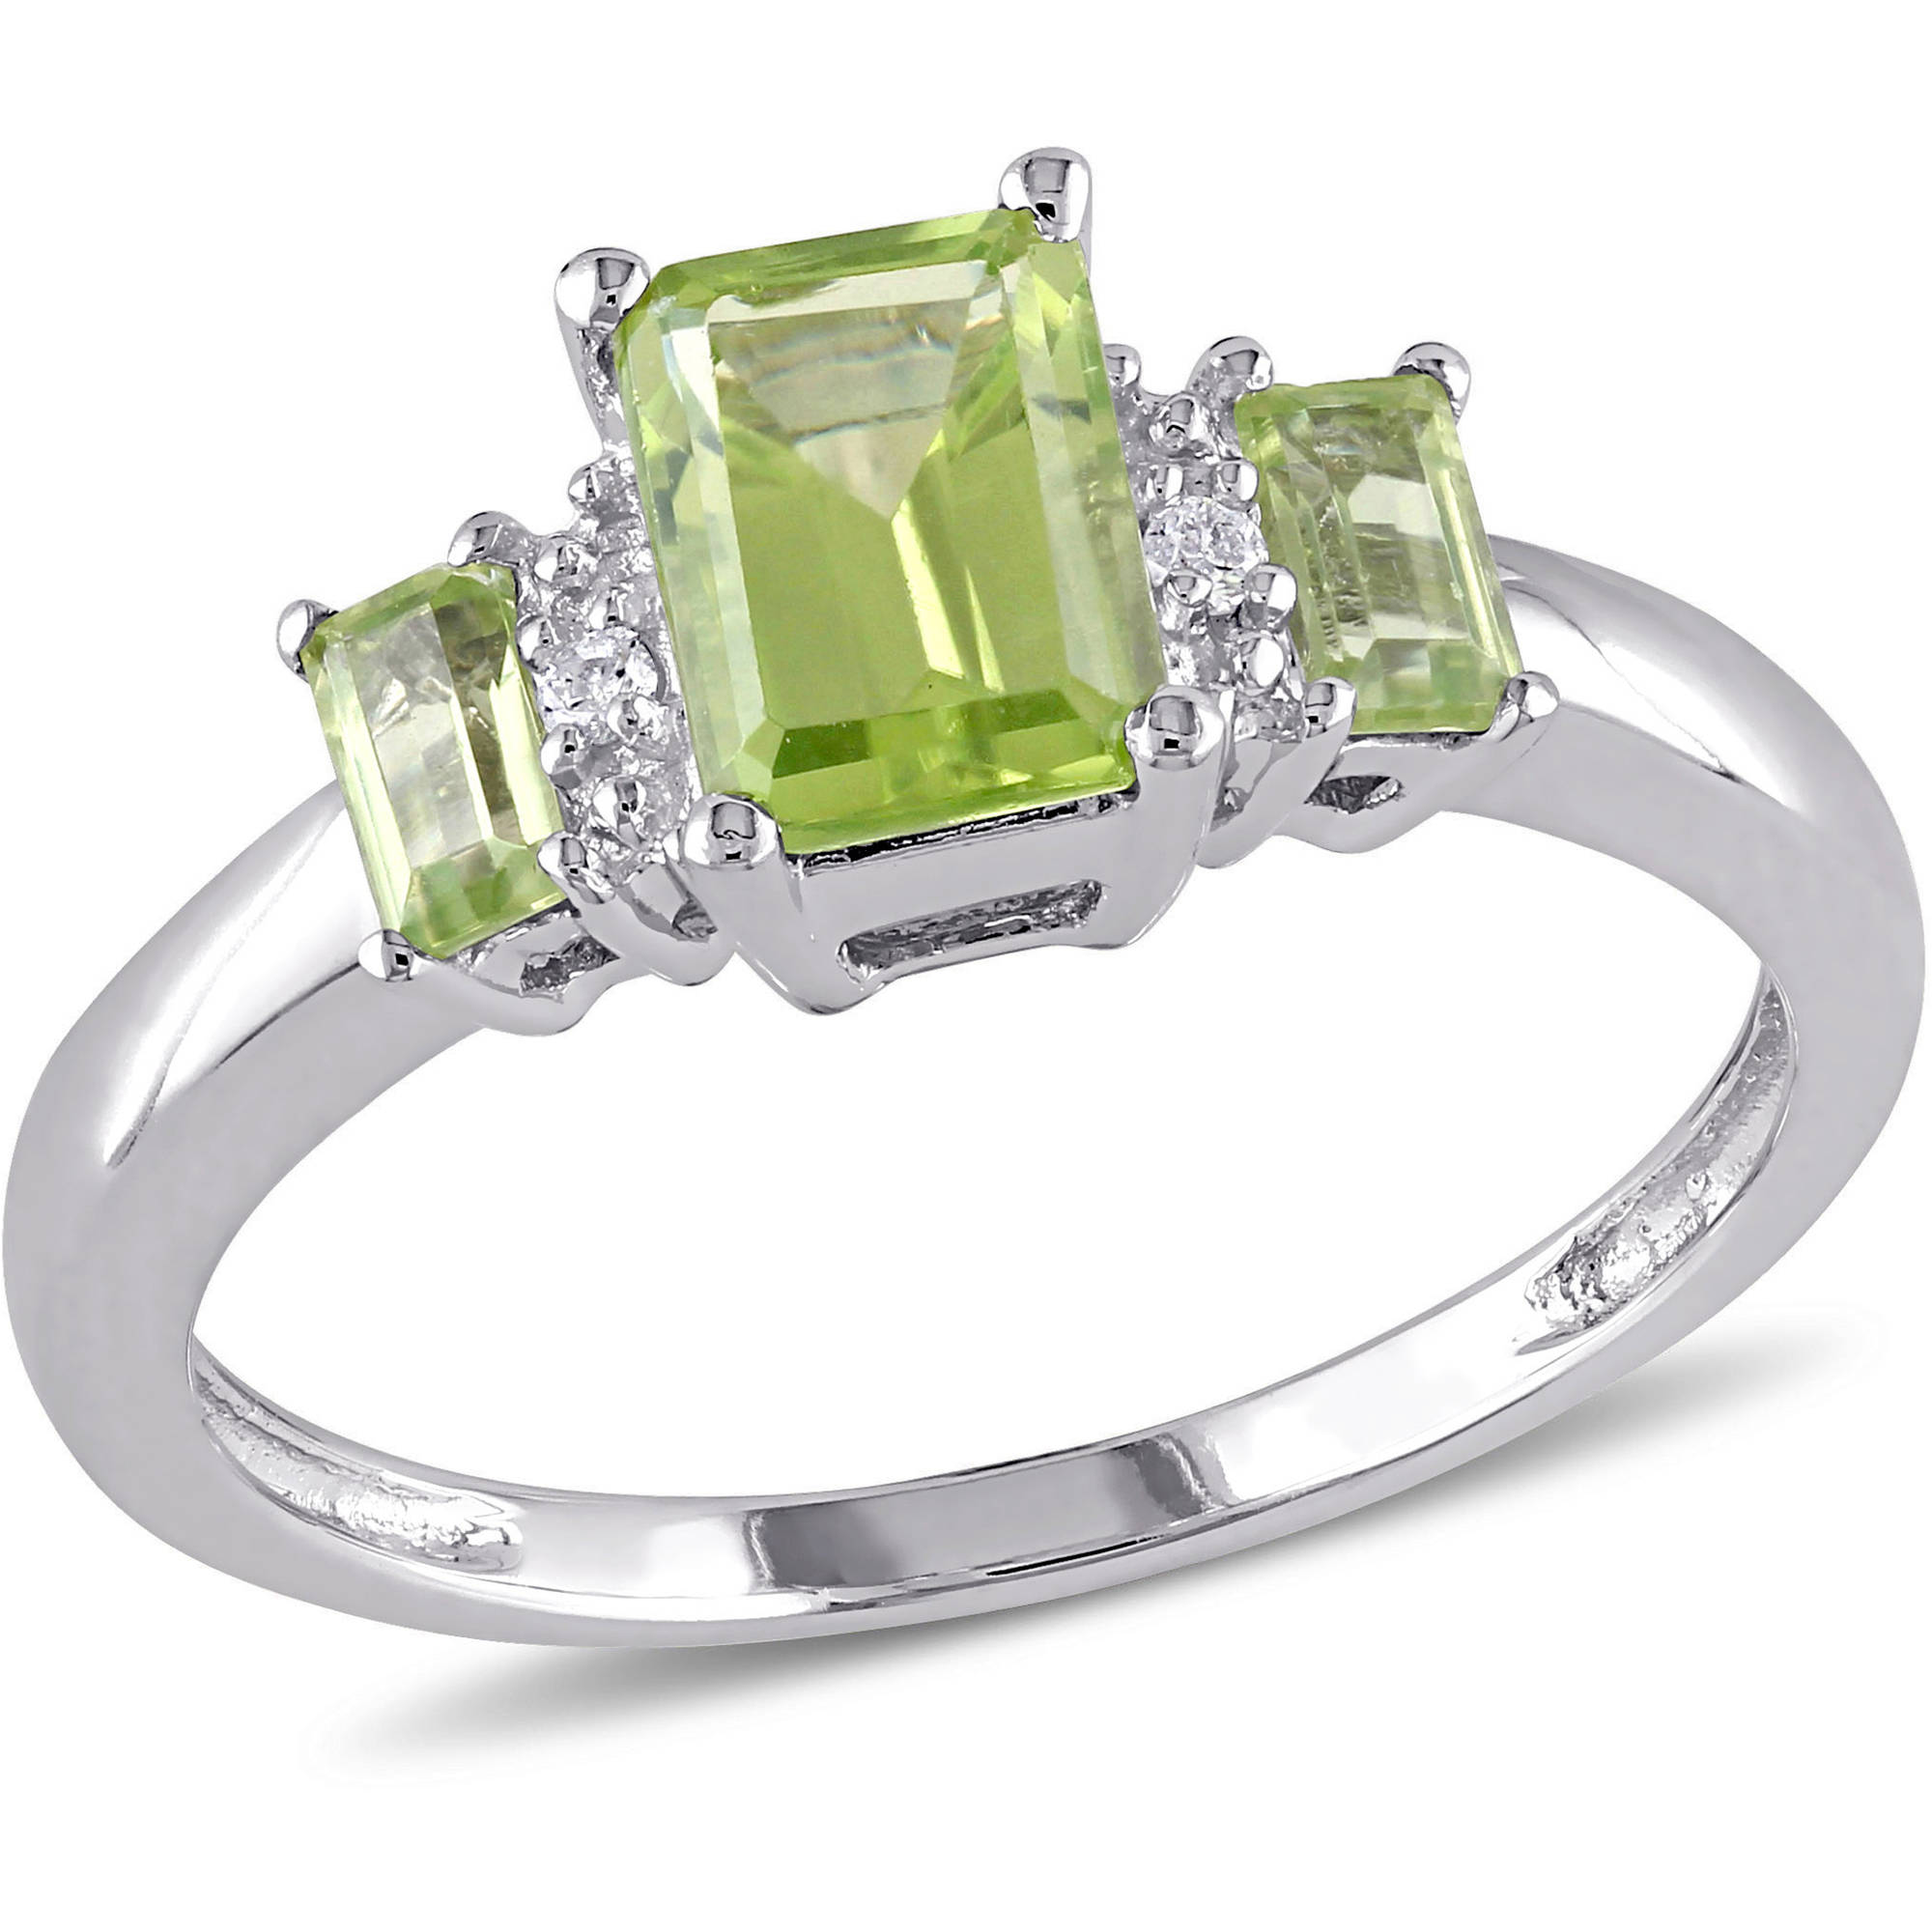 Tangelo 1-1 4 Carat T.G.W. Peridot and Diamond-Accent 10kt White Gold Three-Stone Ring by Tangelo